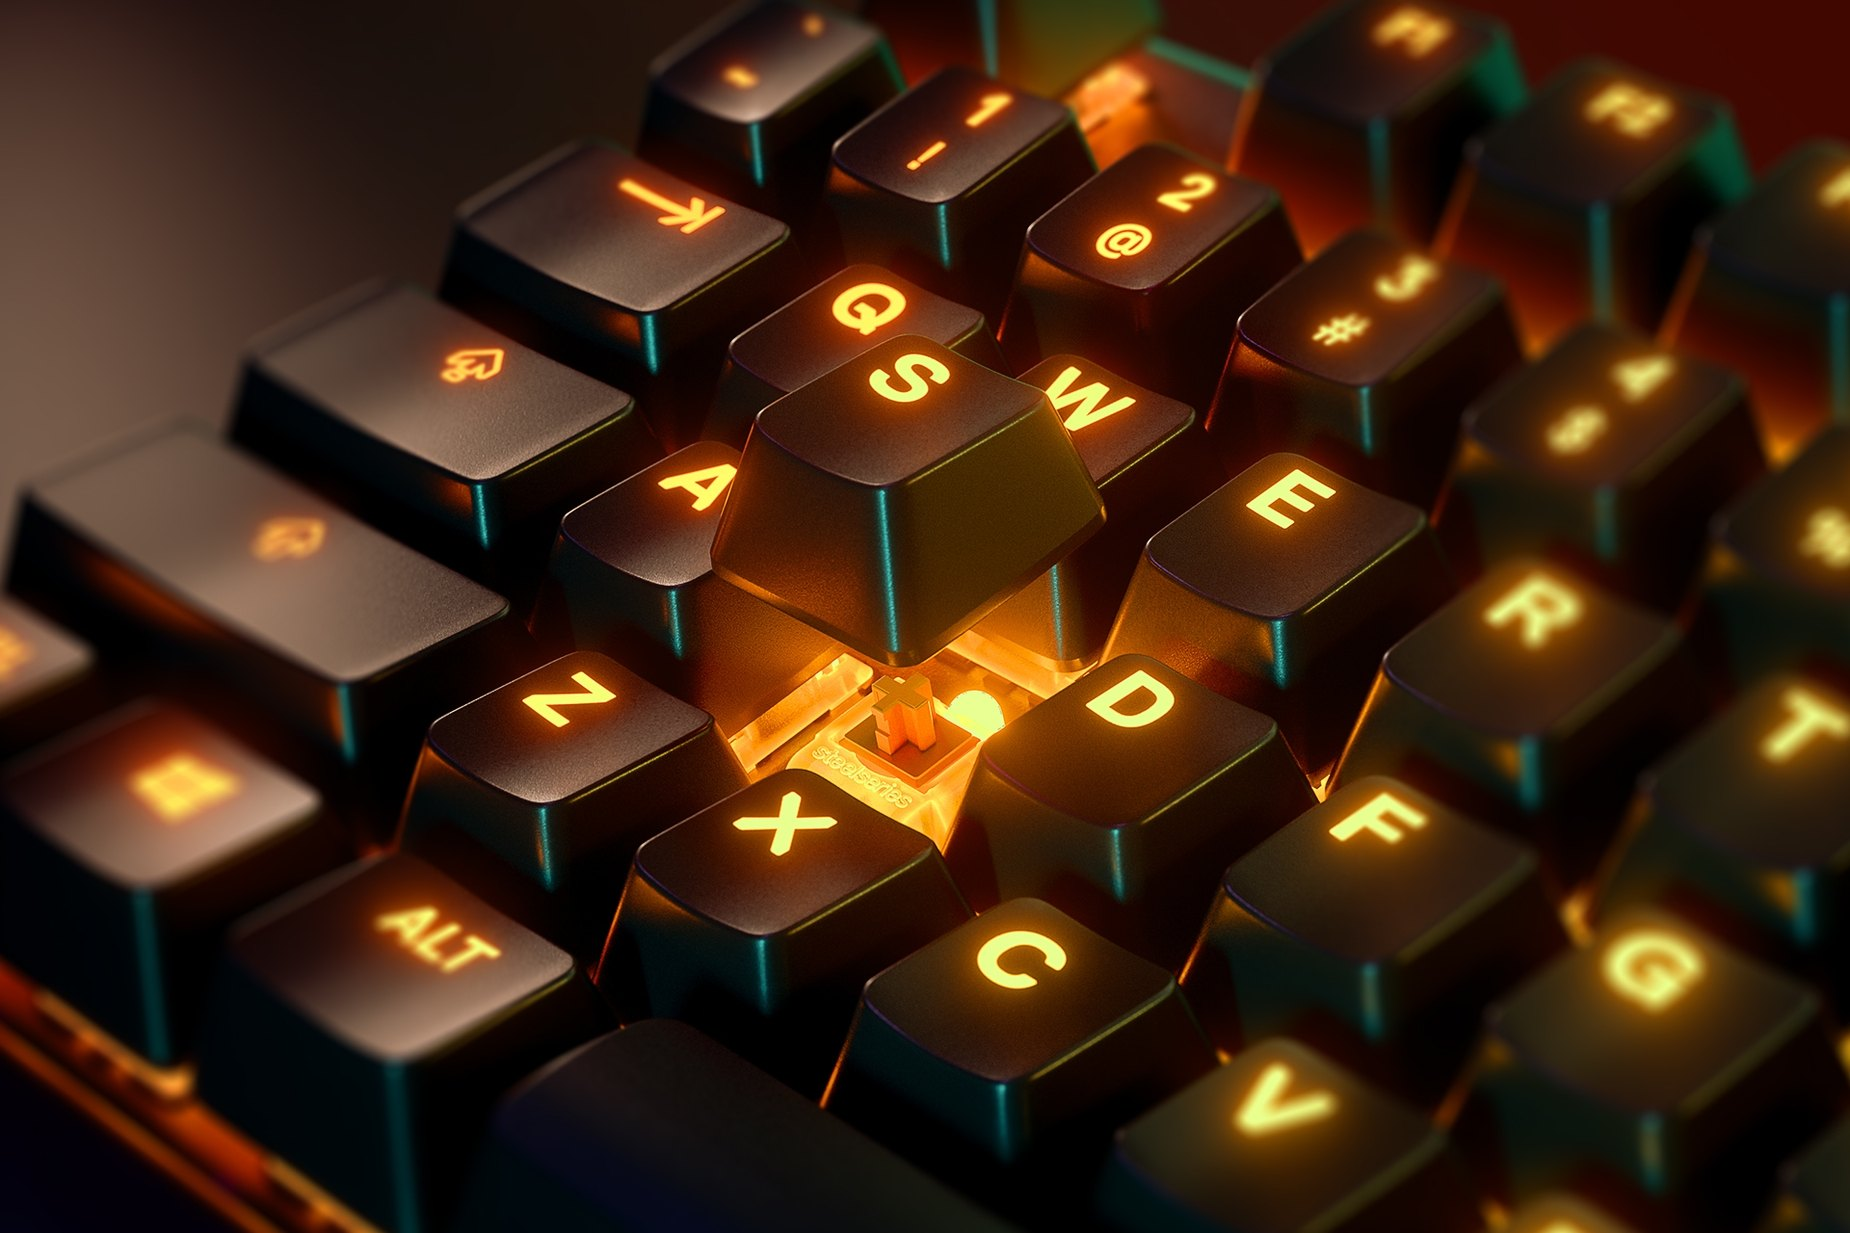 Zoomed in view of a single key on the Nordic - Apex 7 (Brown Switch) gaming keyboard, the key is raised up to show the SteelSeries QX2 Mechanical RGB Switch underneath